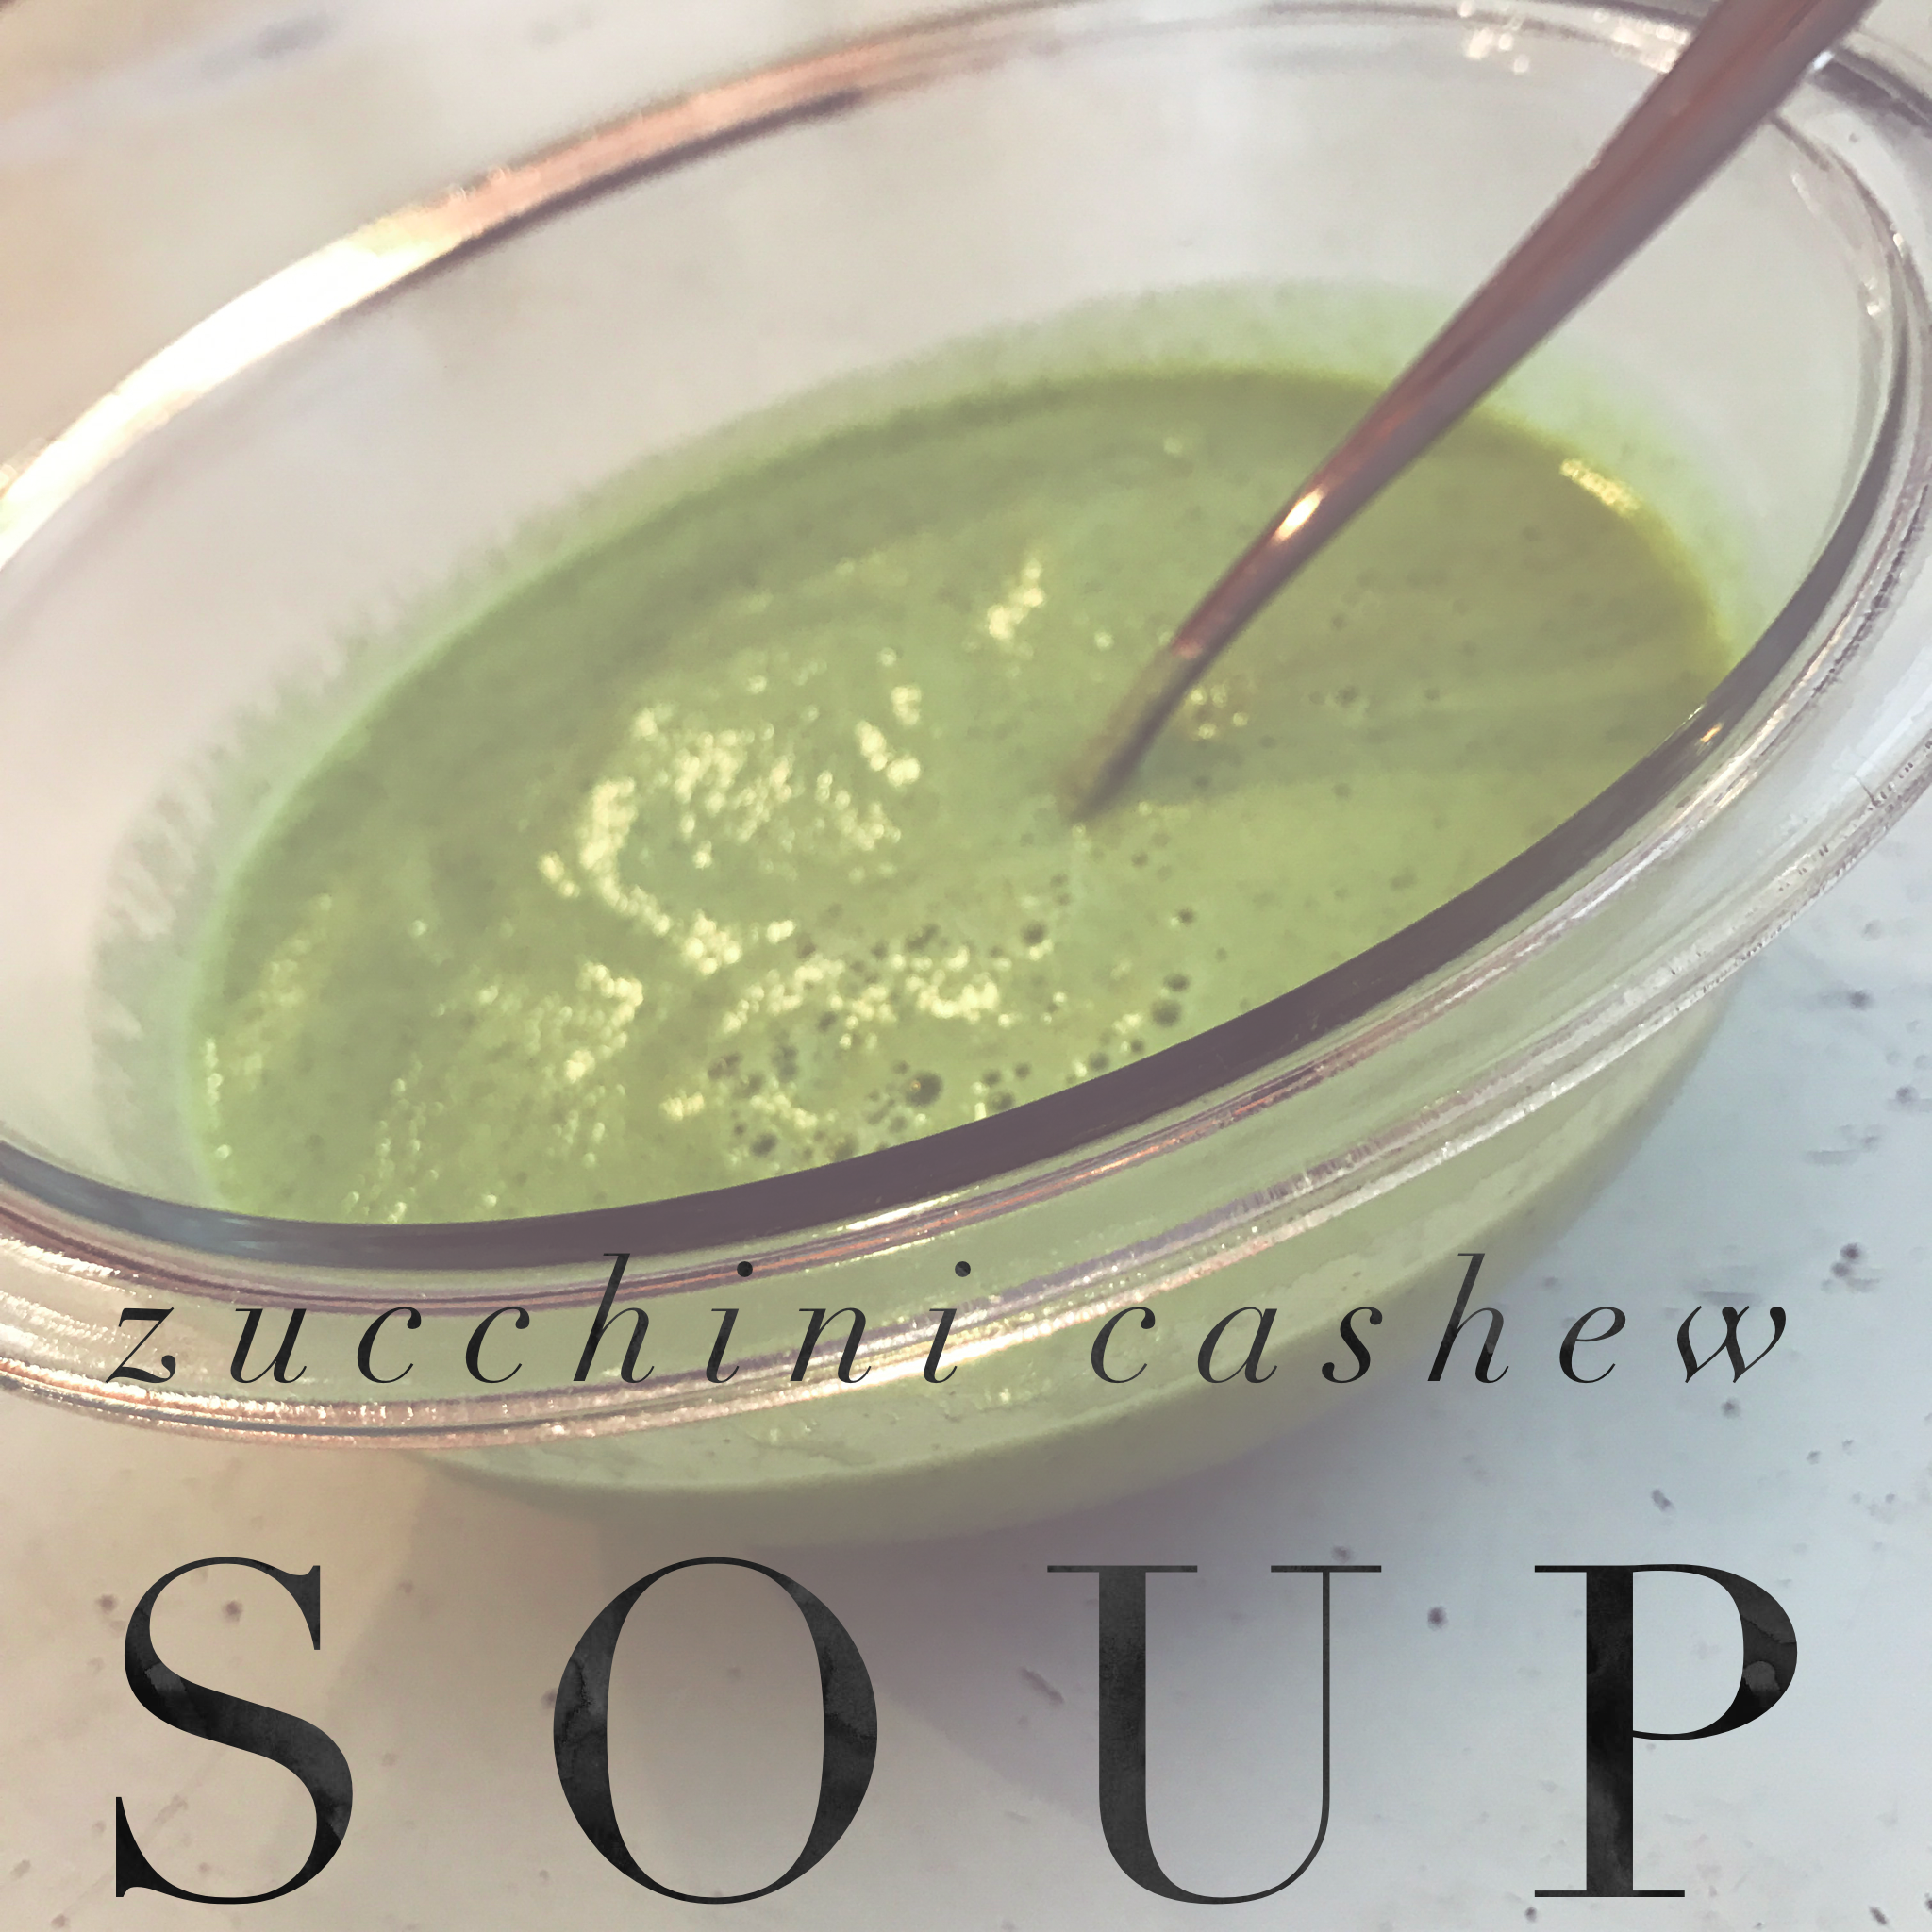 Ingredients:  1 oz. raw cashews (about 17 cashews) 1½ cups water, divided use 1½ medium zucchini, cut into chunks Himalayan salt (or Bragg Liquid Aminos) (to taste; optional) Herbal seasoning blend (or fresh herbs, like basil or dill) (to taste; optional)   Preparation:  1. Soak cashews in ½ cup water for 1 hour. 2. While cashews are soaking, bring 1 cup water to a boil in a small saucepan over medium heat. Add zucchini; cook for 4 to 5 minutes. Drain. Set aside. 3. Place cashews (with water), zucchini, salt (if desired), and seasoning blend (if desired) in a blender or food processor, in 2 or more batches if necessary; cover with lid and kitchen towel. Blend until smooth. 4. Heat soup, if desired, in a medium saucepan over medium heat; cook, stirring frequently, for 4 to 5 minutes or until hot. Do not boil. 5. Soup can also be served cold.